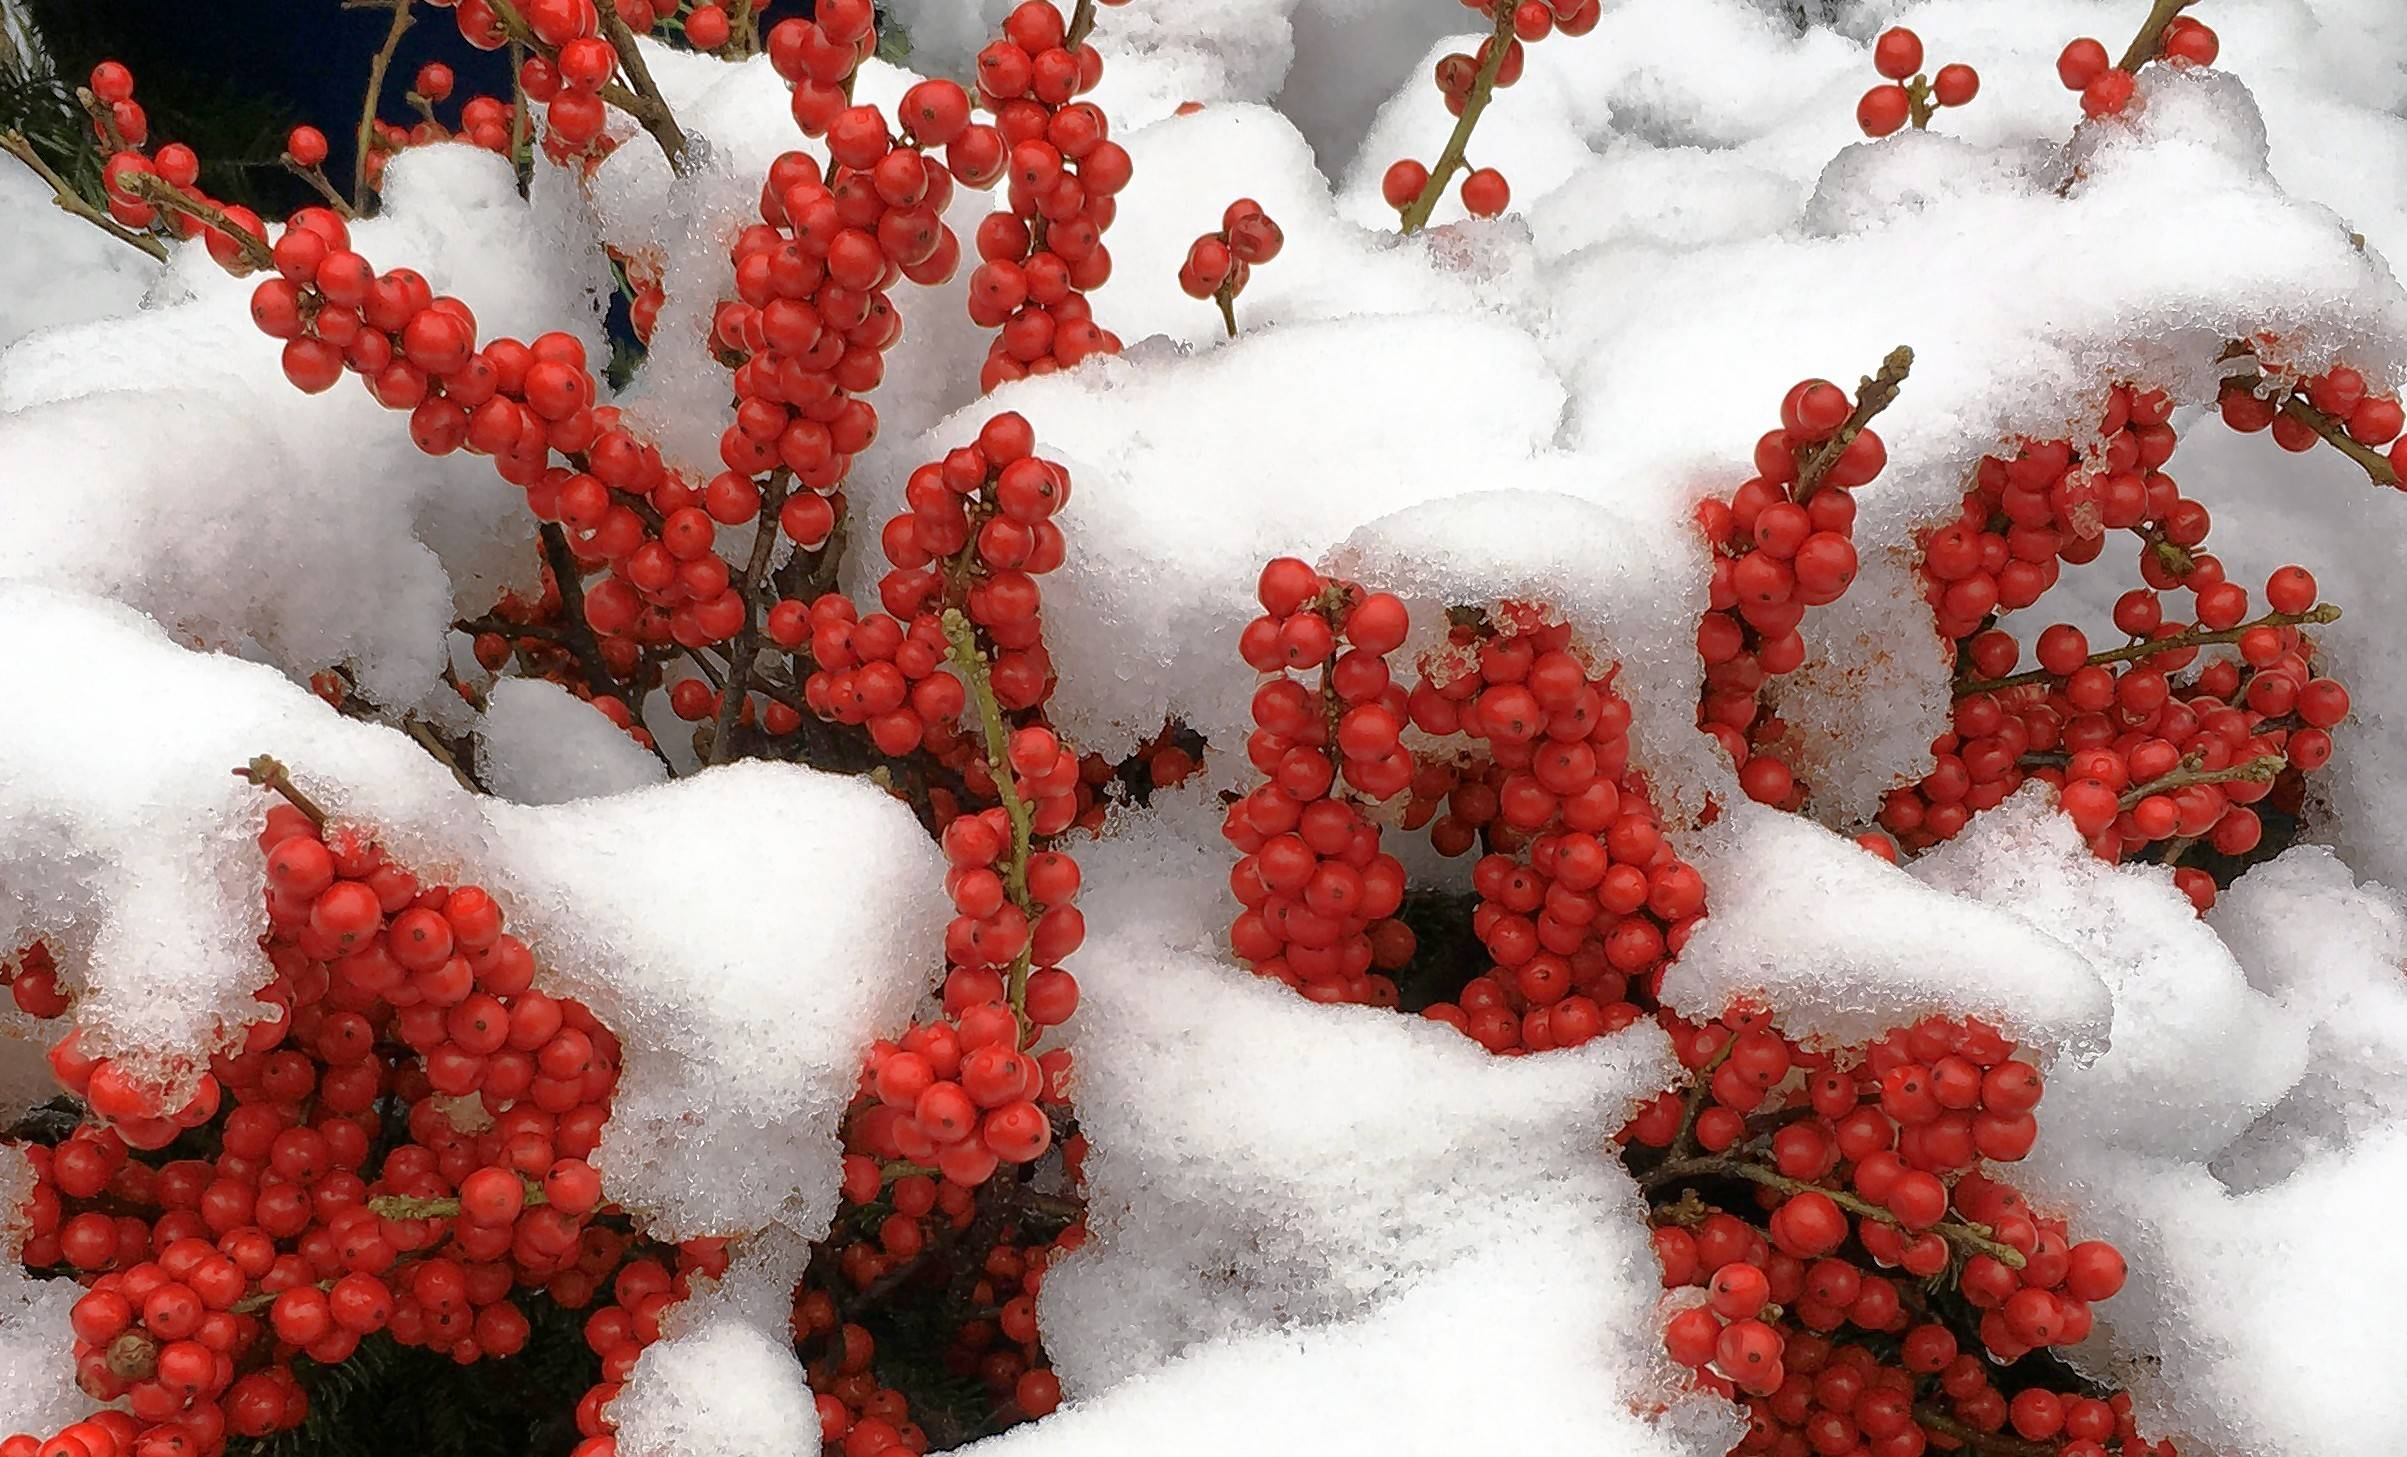 The red berries of winterberry shine when covered with snow.